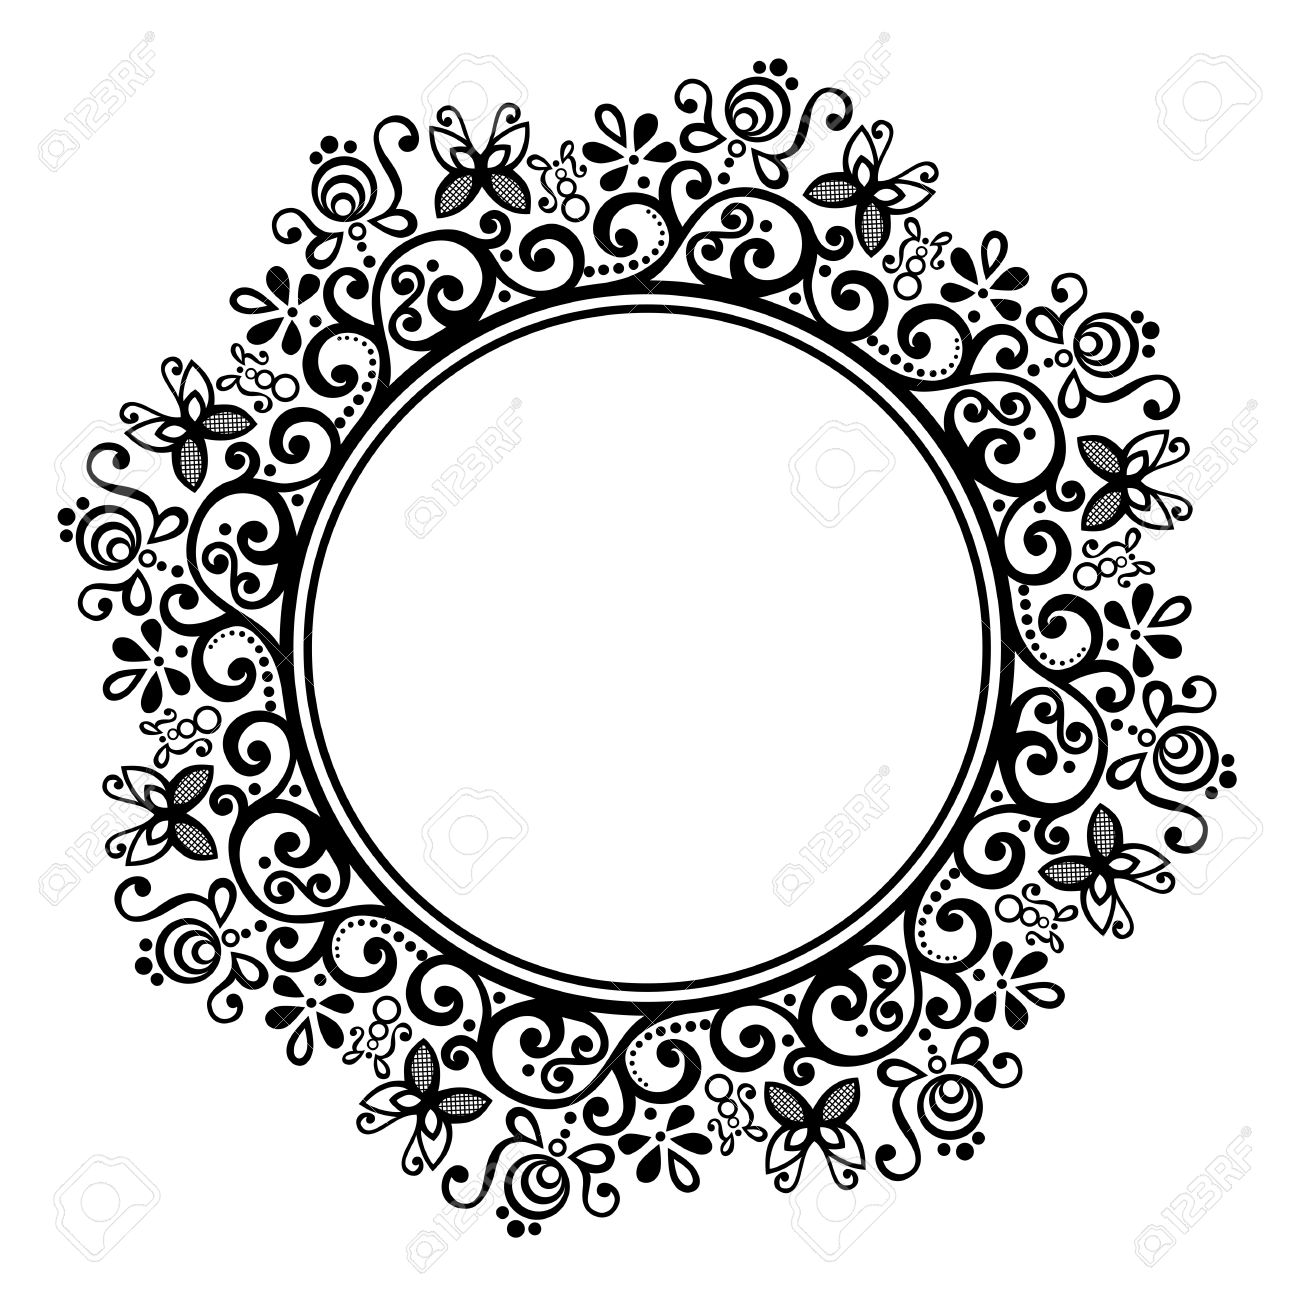 Set Of Decorative Round Frames Royalty Free Cliparts, Vectors, And ...